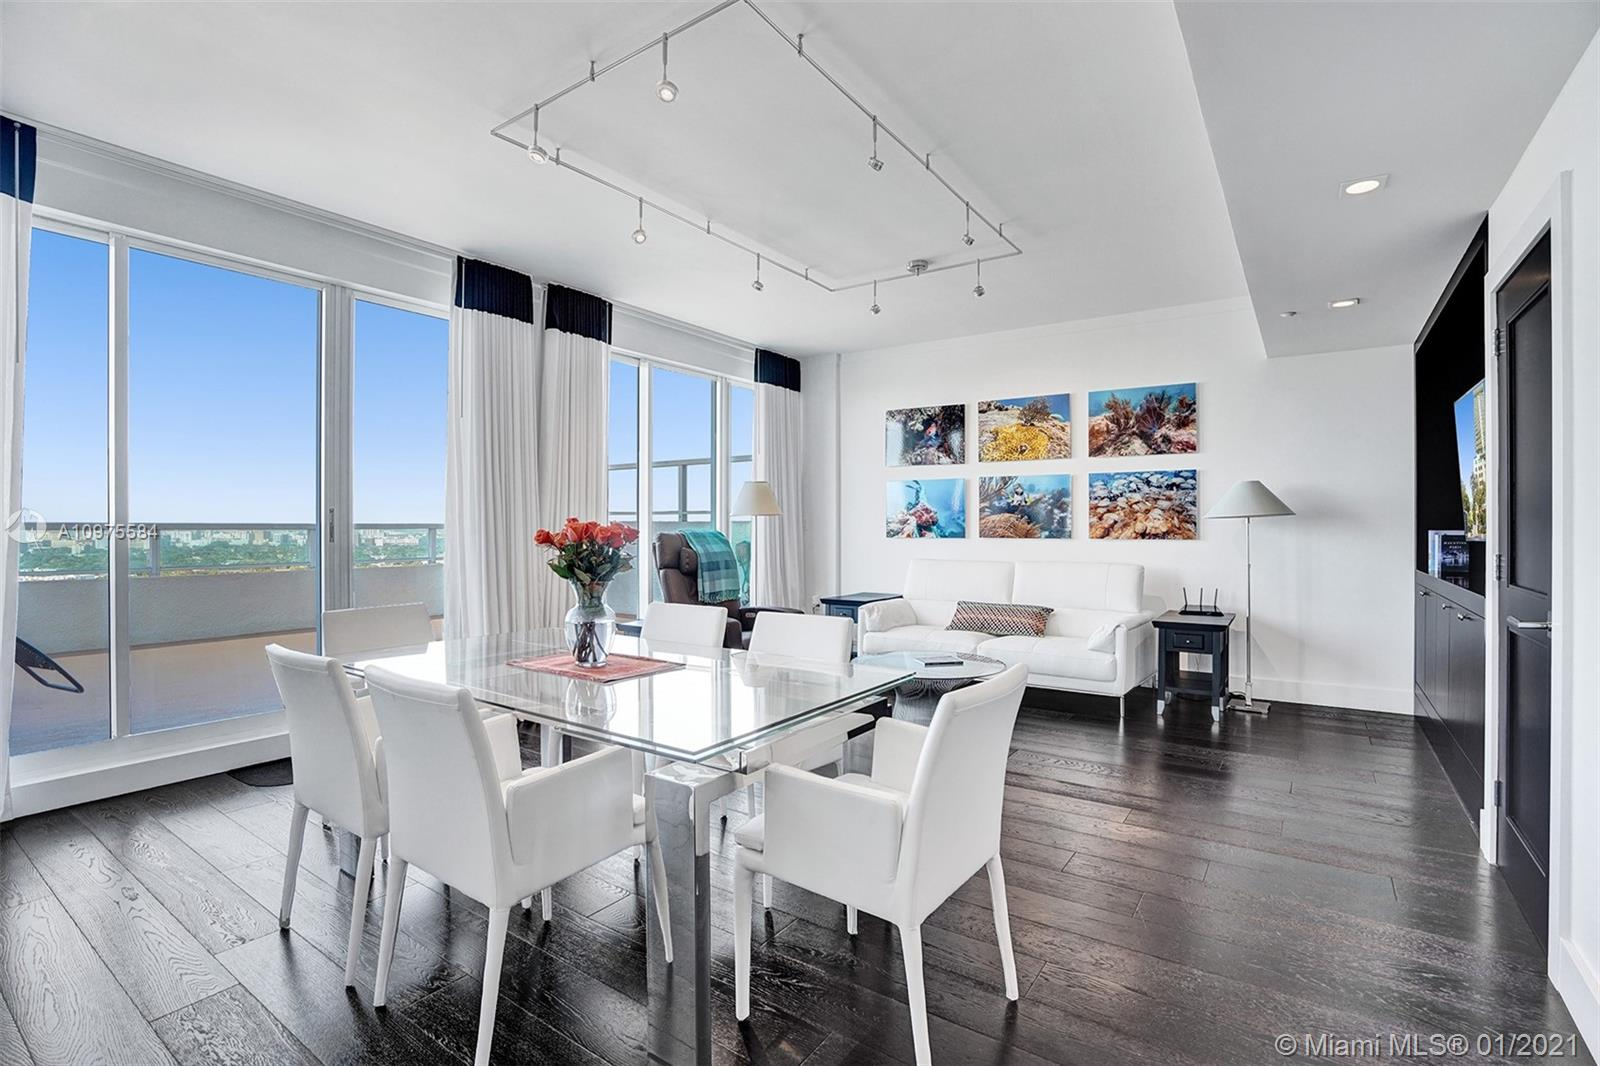 Stunning 1bed, 2bath Penthouse with an oversized balcony overlooking the amazing Coconut Grove Skyline! Beautifully remodeled featuring gorgeous dark stained wood floors throughout, floor to ceiling glass sliding doors, high ceilings, custom interior doors, detailed lighting, contemporary high-end finishes, and an open kitchen with top-of-the-line appliances. The Arya is conveniently located in the heart of Coconut Grove walking distance to top-rated restaurants, cafes, chic boutique shops, art galleries, and more. Enjoy luxurious amenities and services while living in your private residence. Amenities include a heated pool, fully-equipped fitness center, squash courts, front desk concierge, and valet parking. Perfect for full or part time use, benefit from a flexible rental policy.